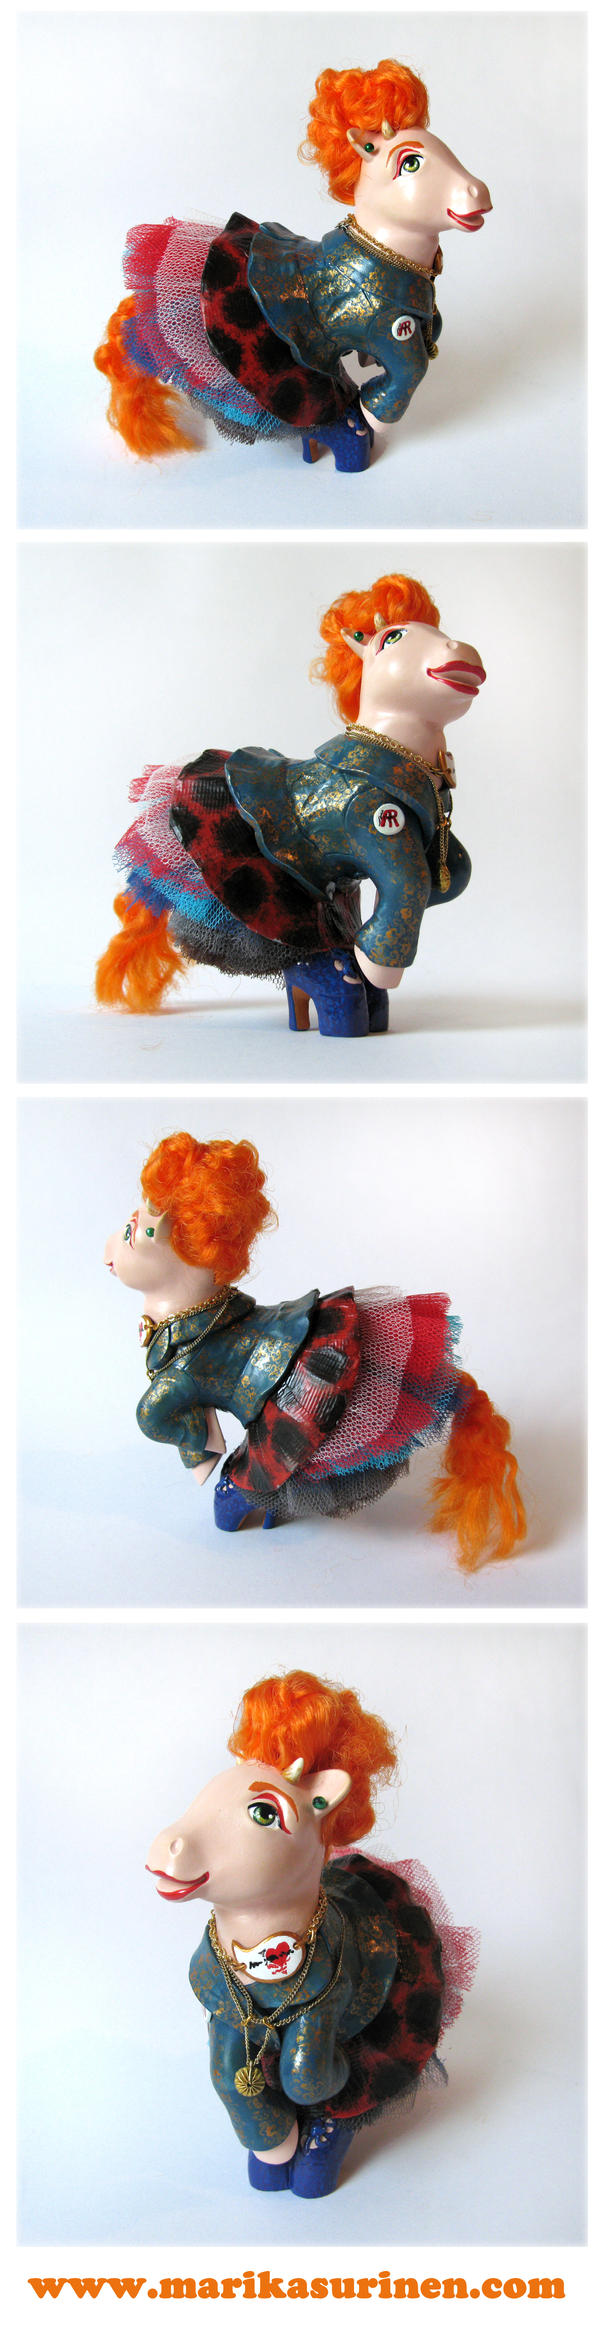 My Little Vivienne Westwood by Spippo